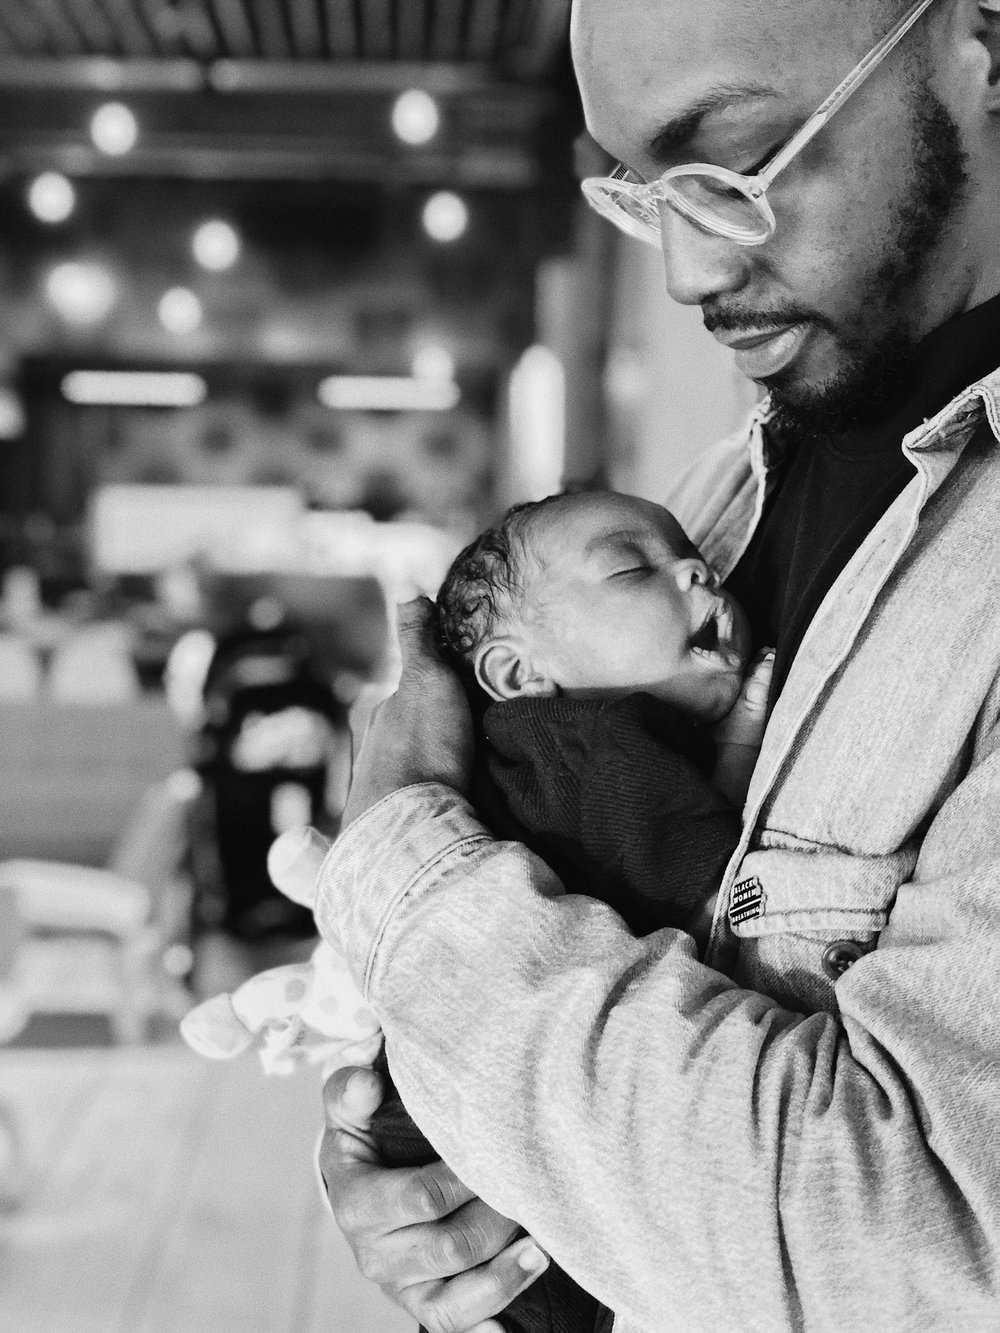 Adrian and his newborn daughter Emory, photo courtesy of Michael Lyon